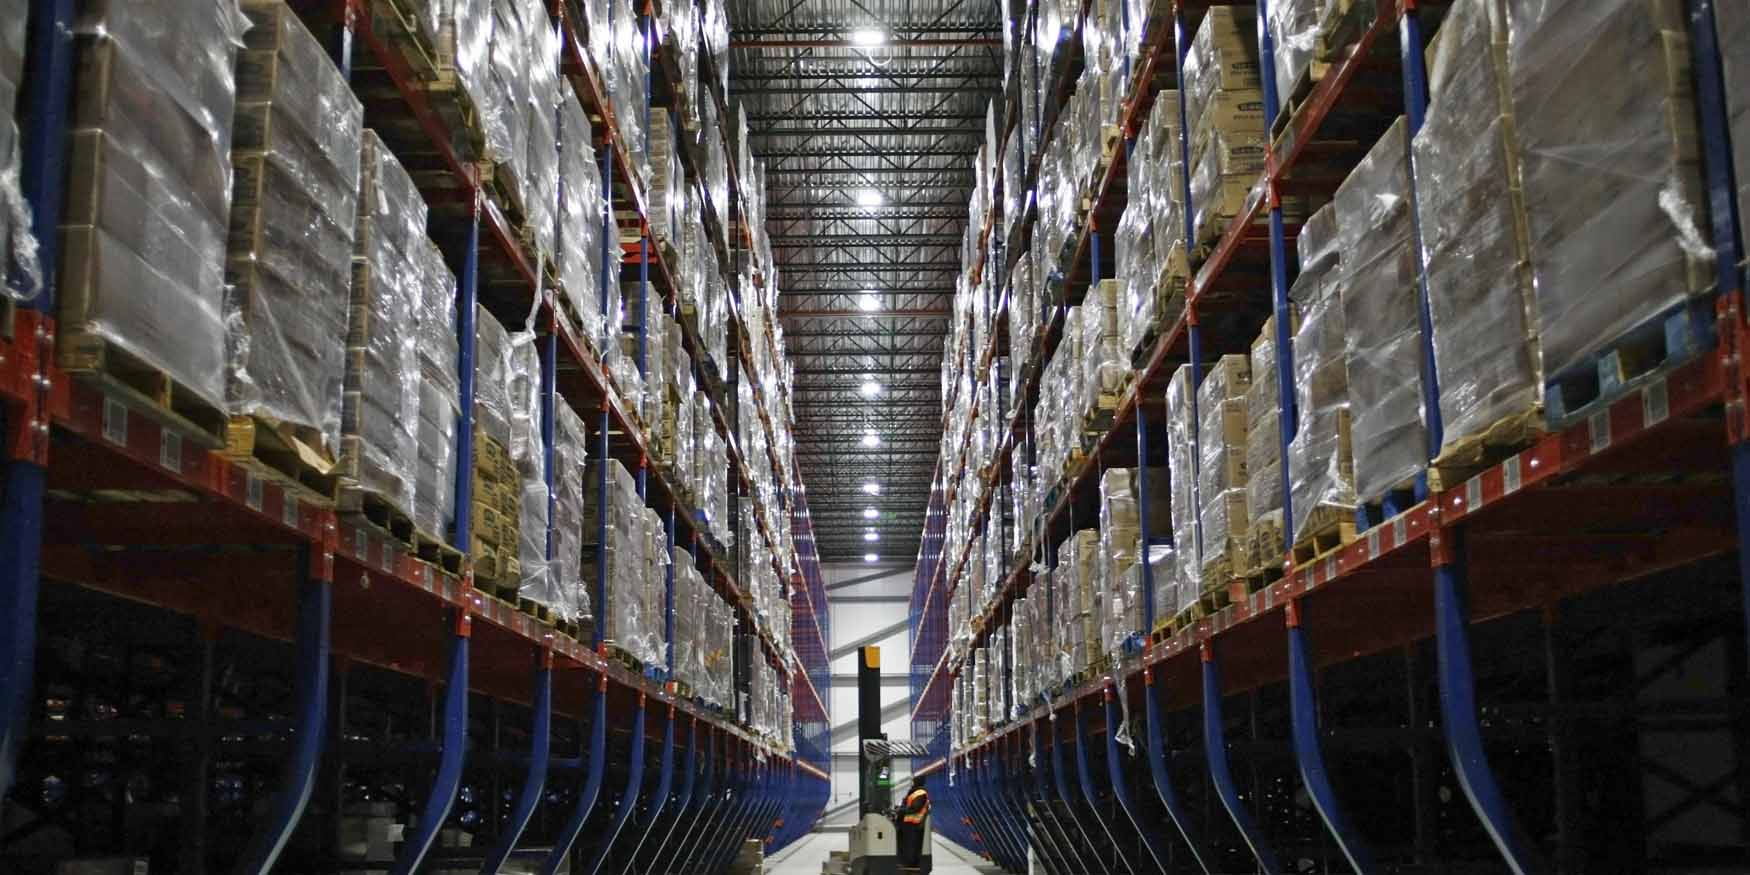 Cold Storage Pallet Racking & Cold Storage Pallet Racking Systems | Elite Storage Solutions